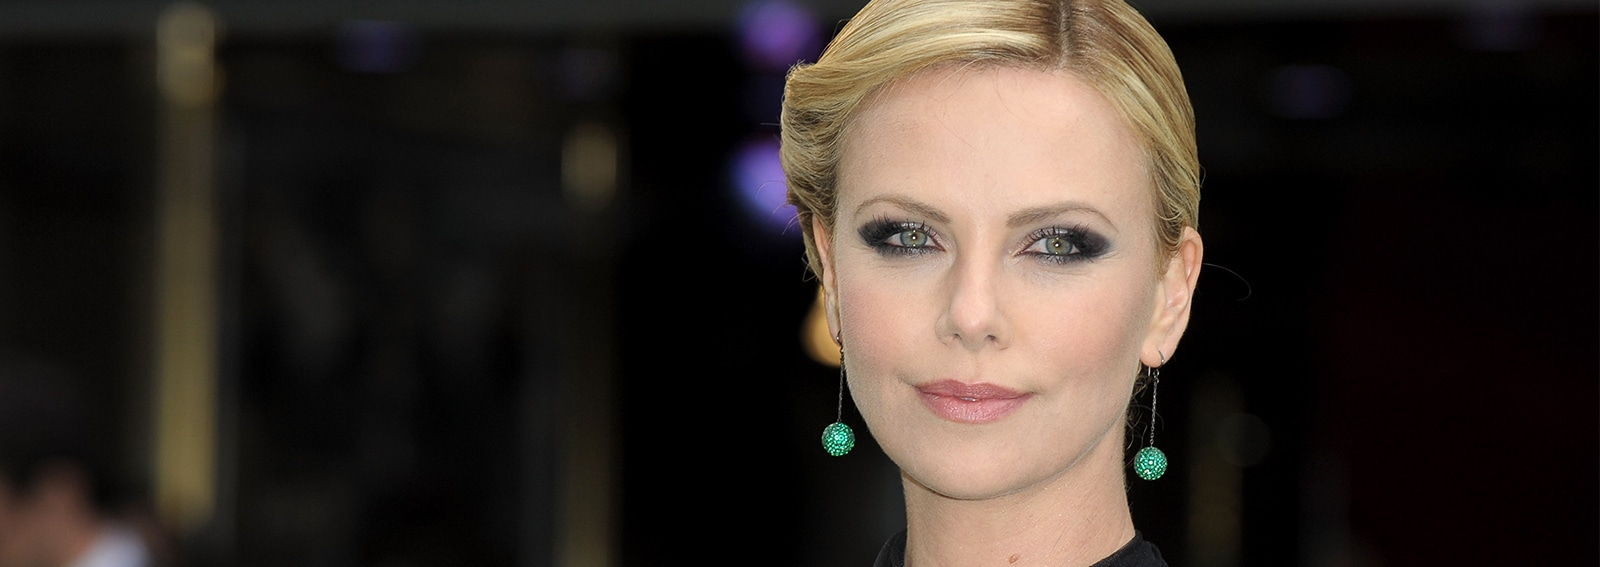 cover charlize theron ha nuovo amore desktop